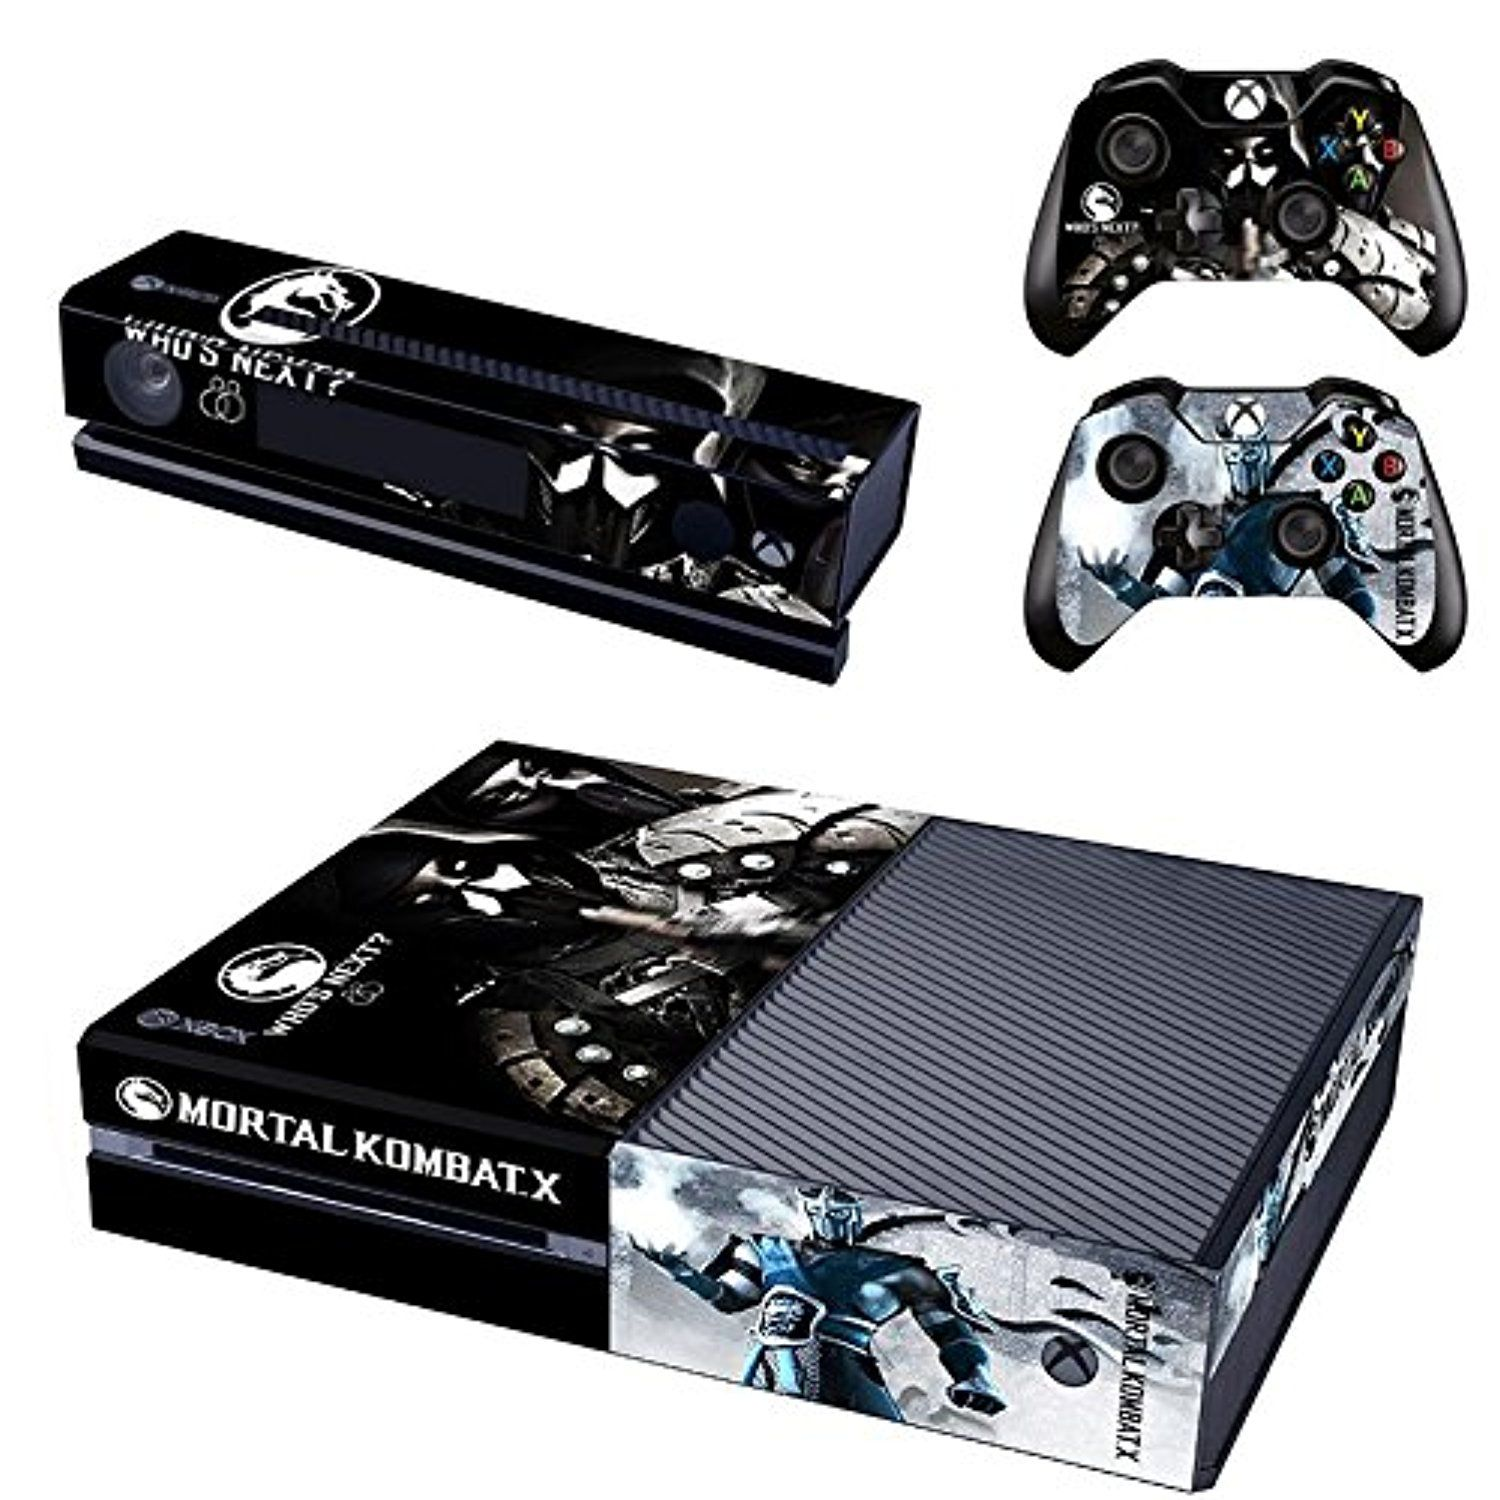 Mortal Kombat X Xbox One Skin For Console And Controllers Awesome Products Selected By Anna Churchill Xbox One Skin Xbox One Console Xbox One